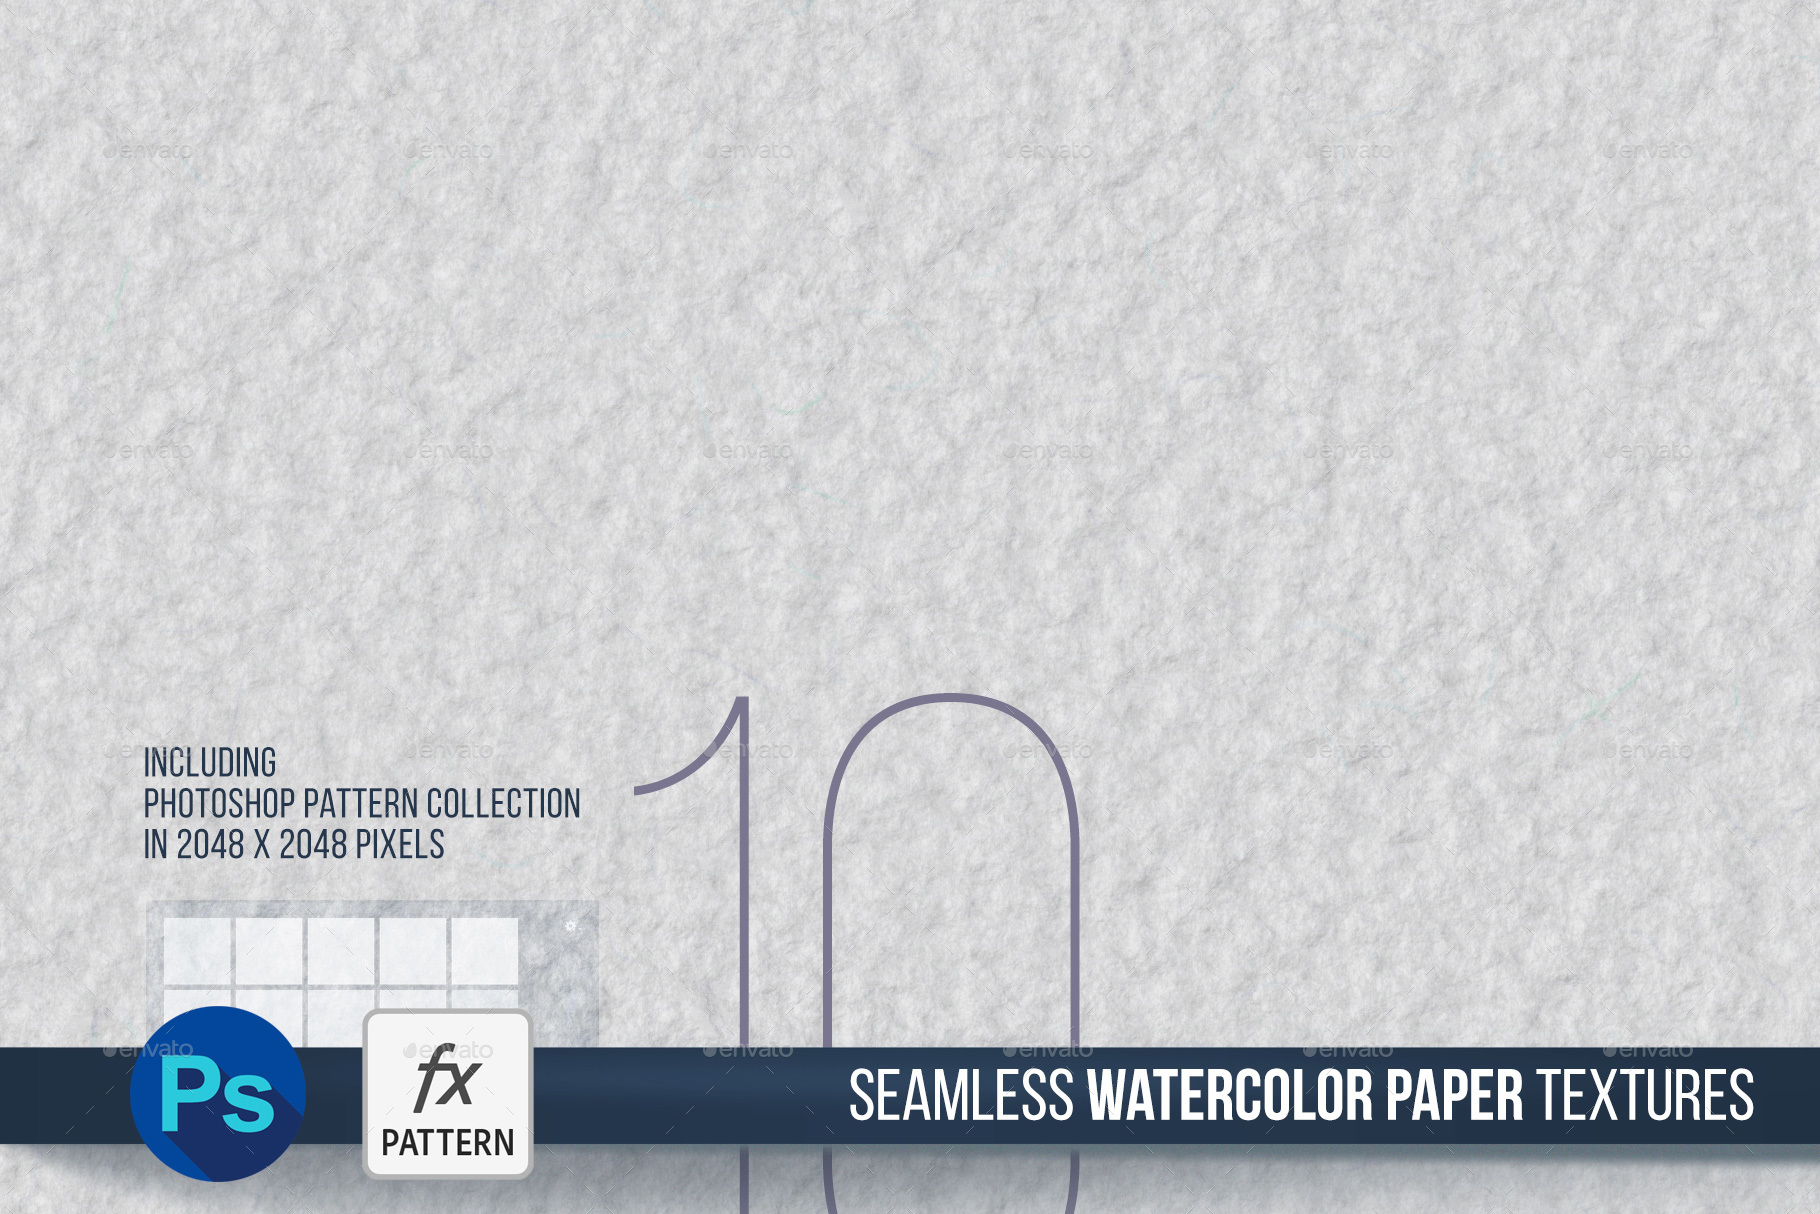 10 Seamless Watercolor Paper Texture